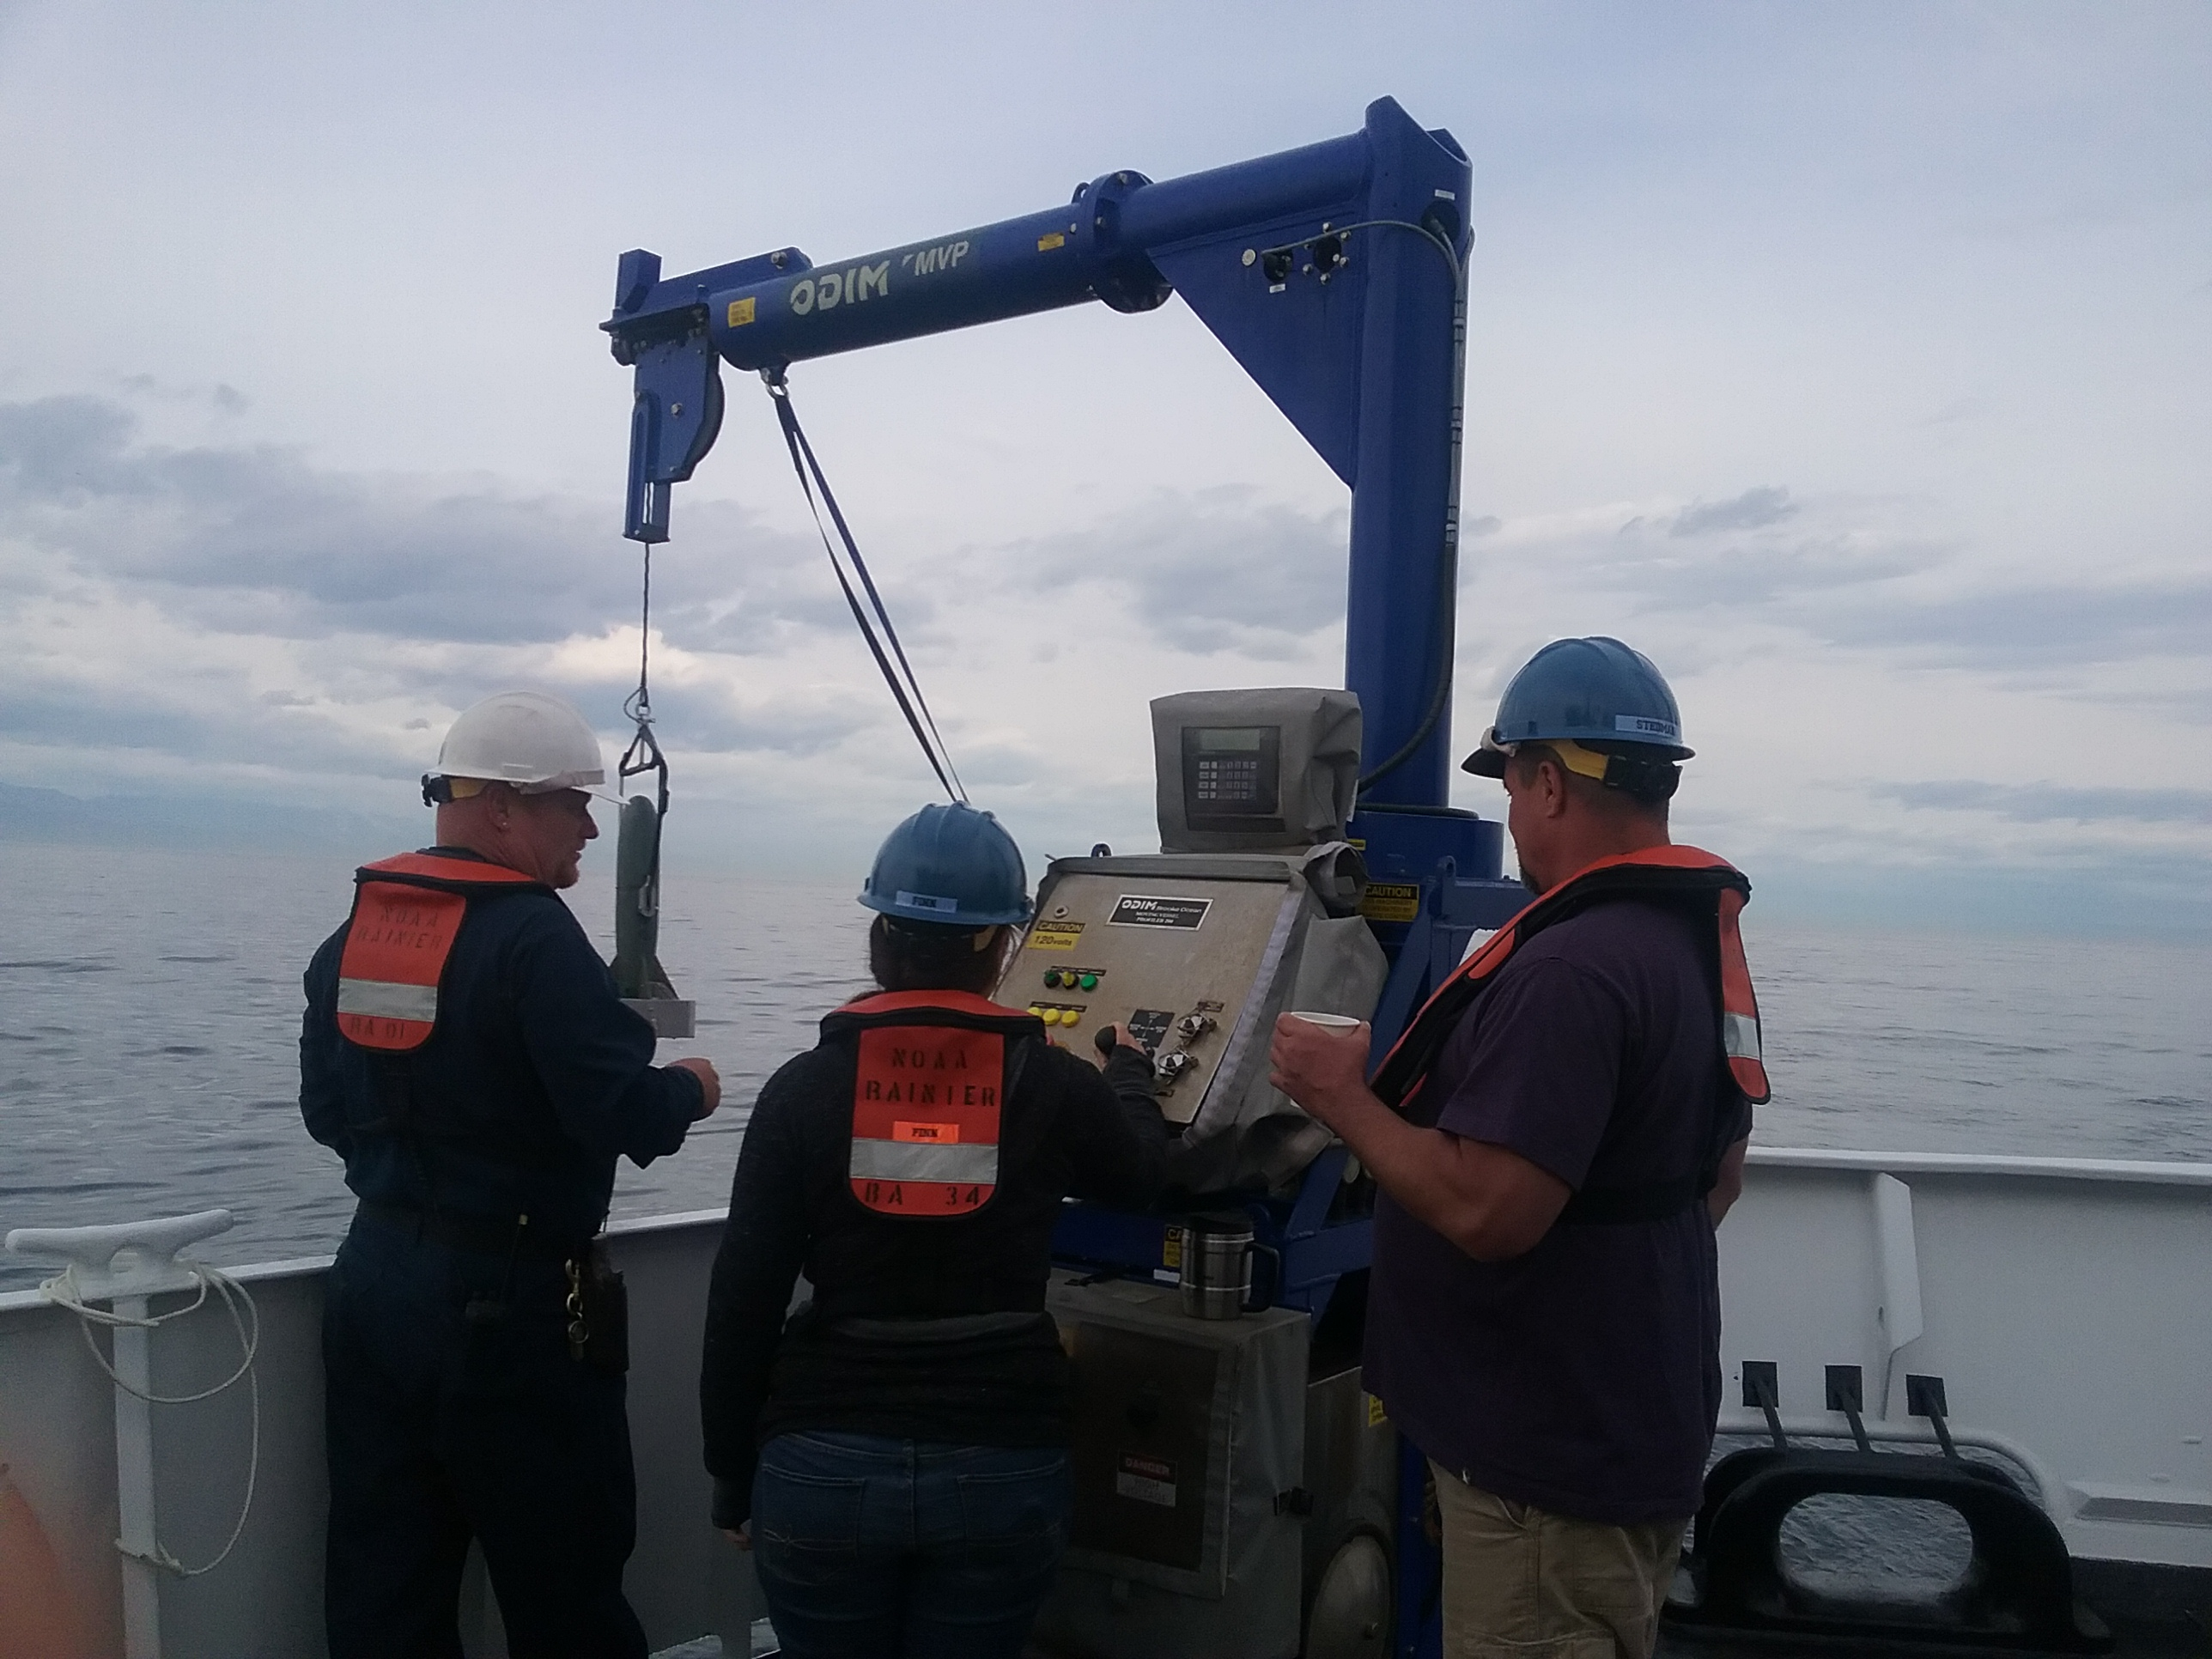 Boatswain Kinyon and Survey Technicians Finn and Stedman releasing the torpedo of the M.V.P. into the water